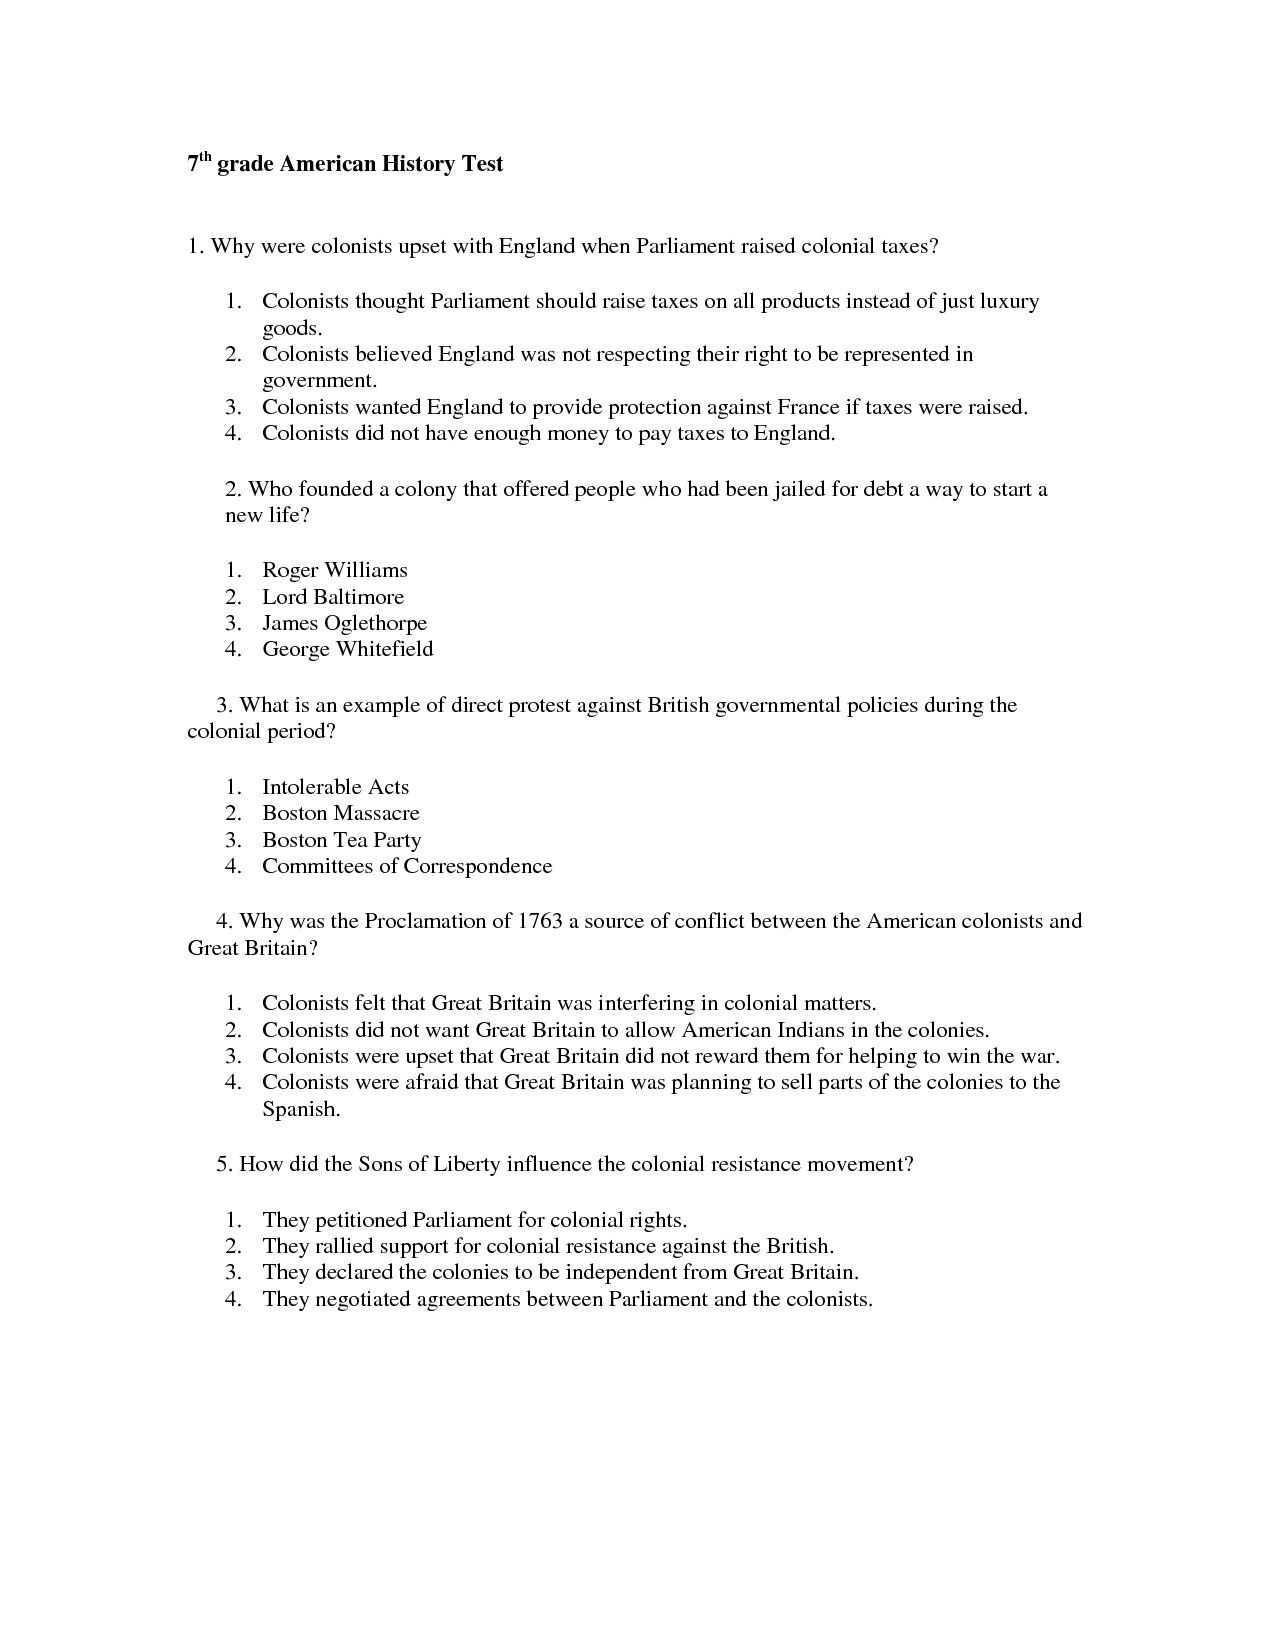 7th Grade Science Worksheets In 2020 Letter Worksheets For Preschool Science Worksheets History Worksheets